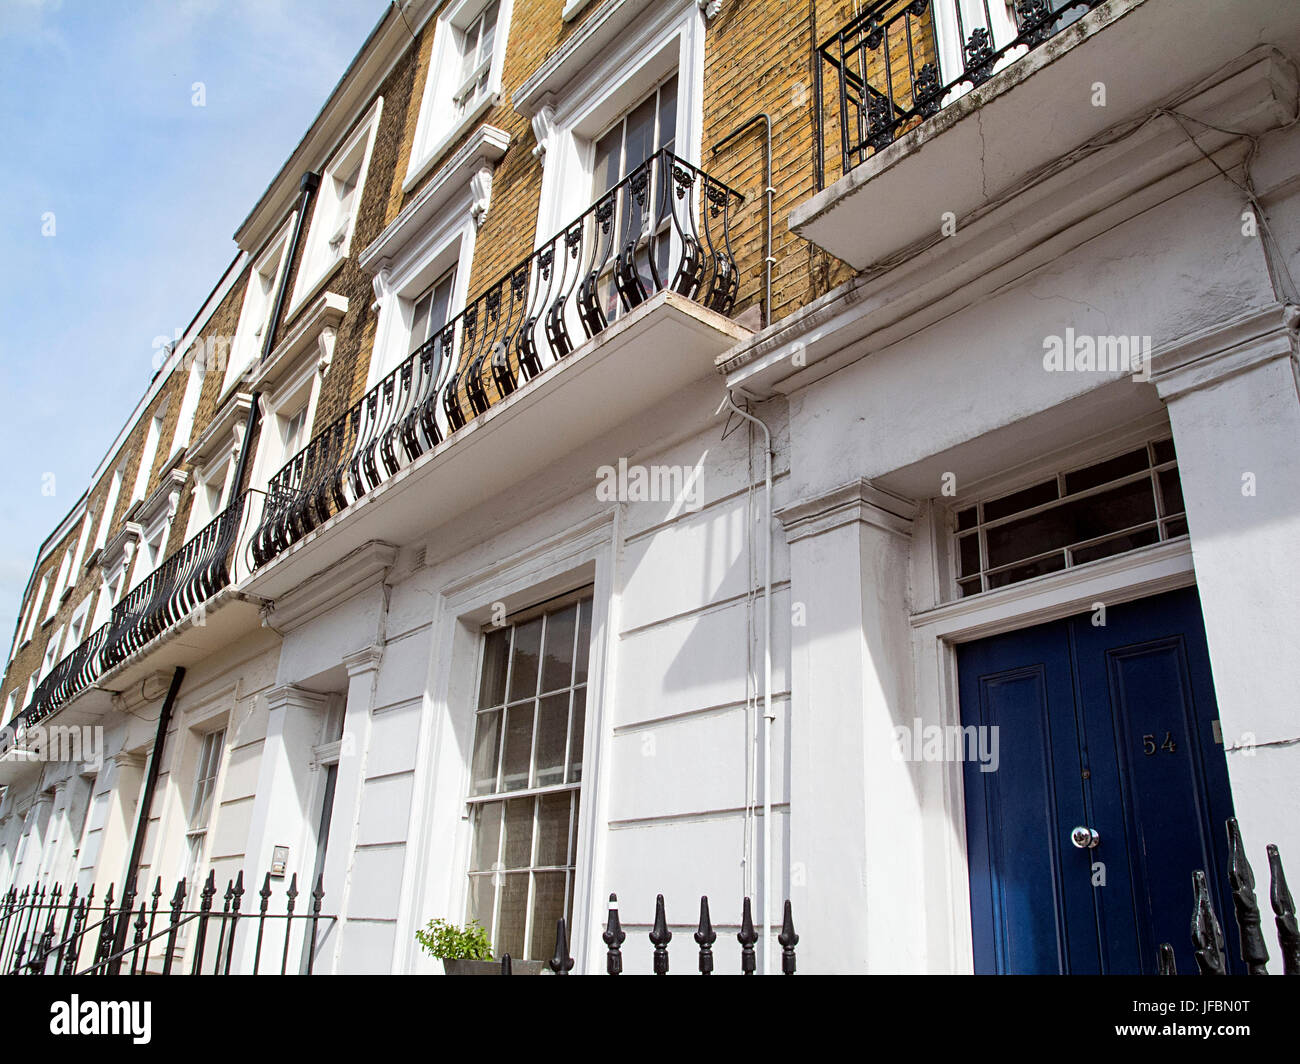 Victorian Style Houses in Camden Town - Stock Image